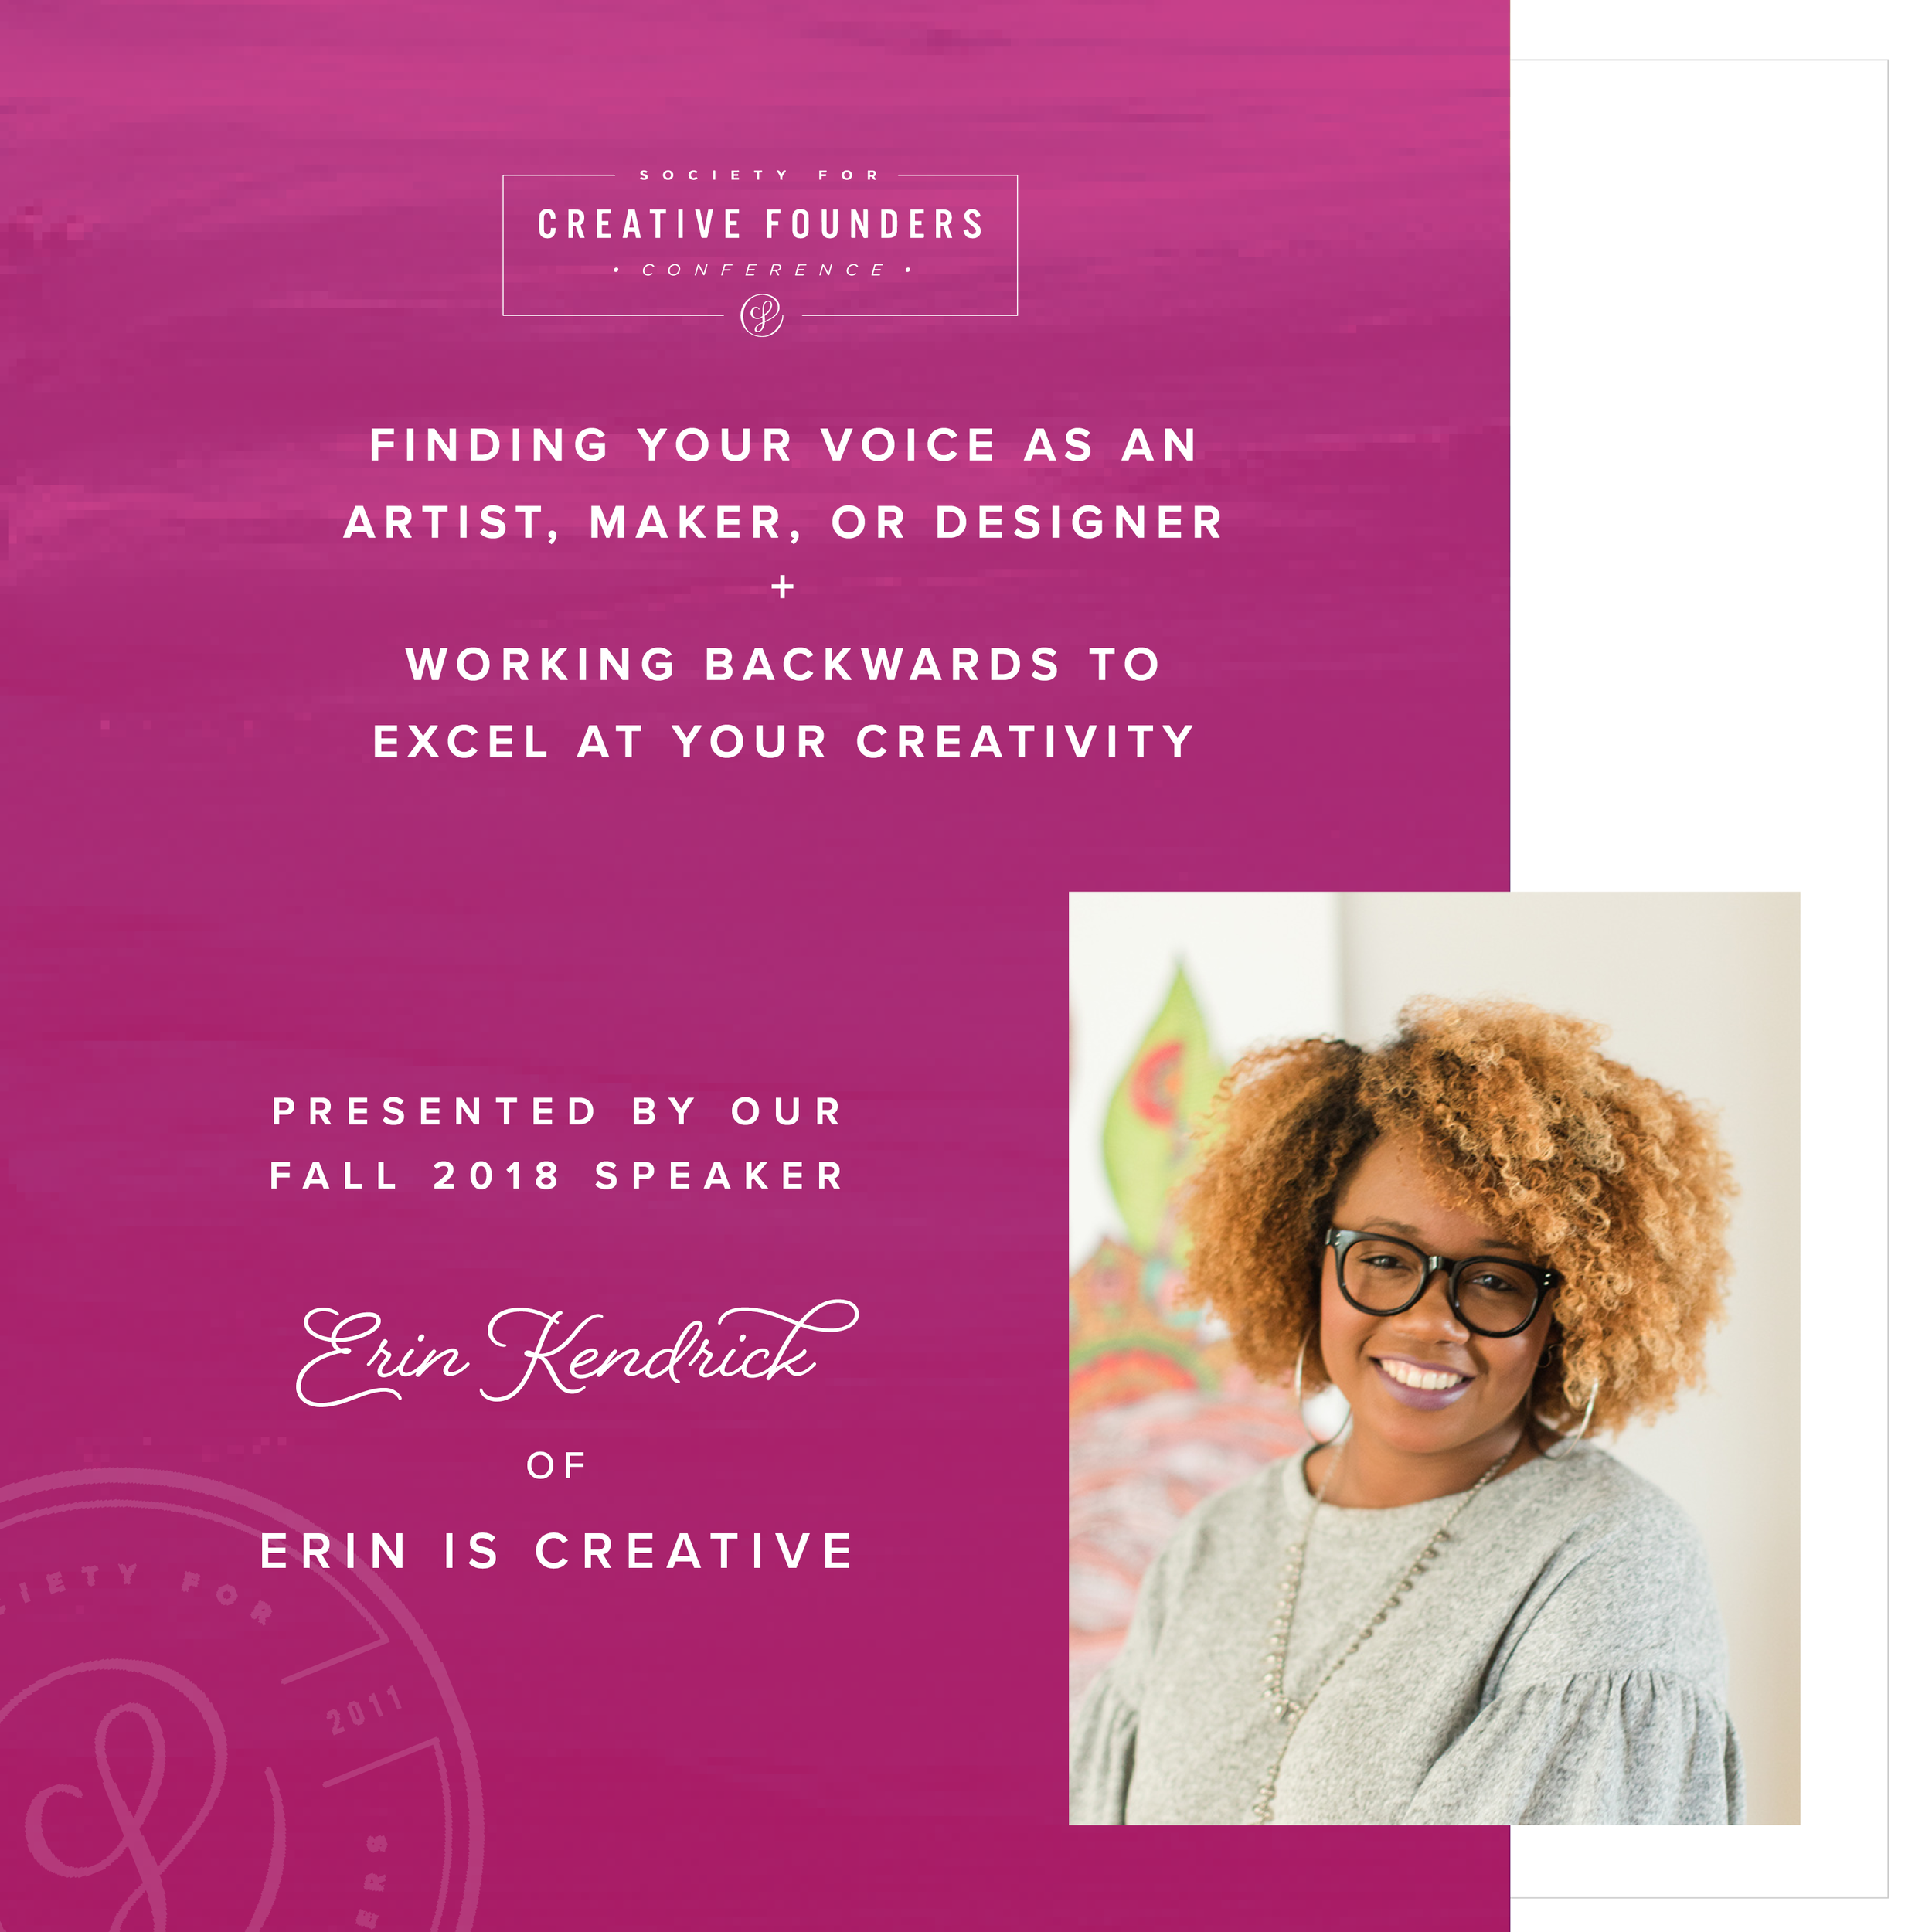 2018 Creative Founders Conference Speaker Erin Kendrick of Erin is Creative